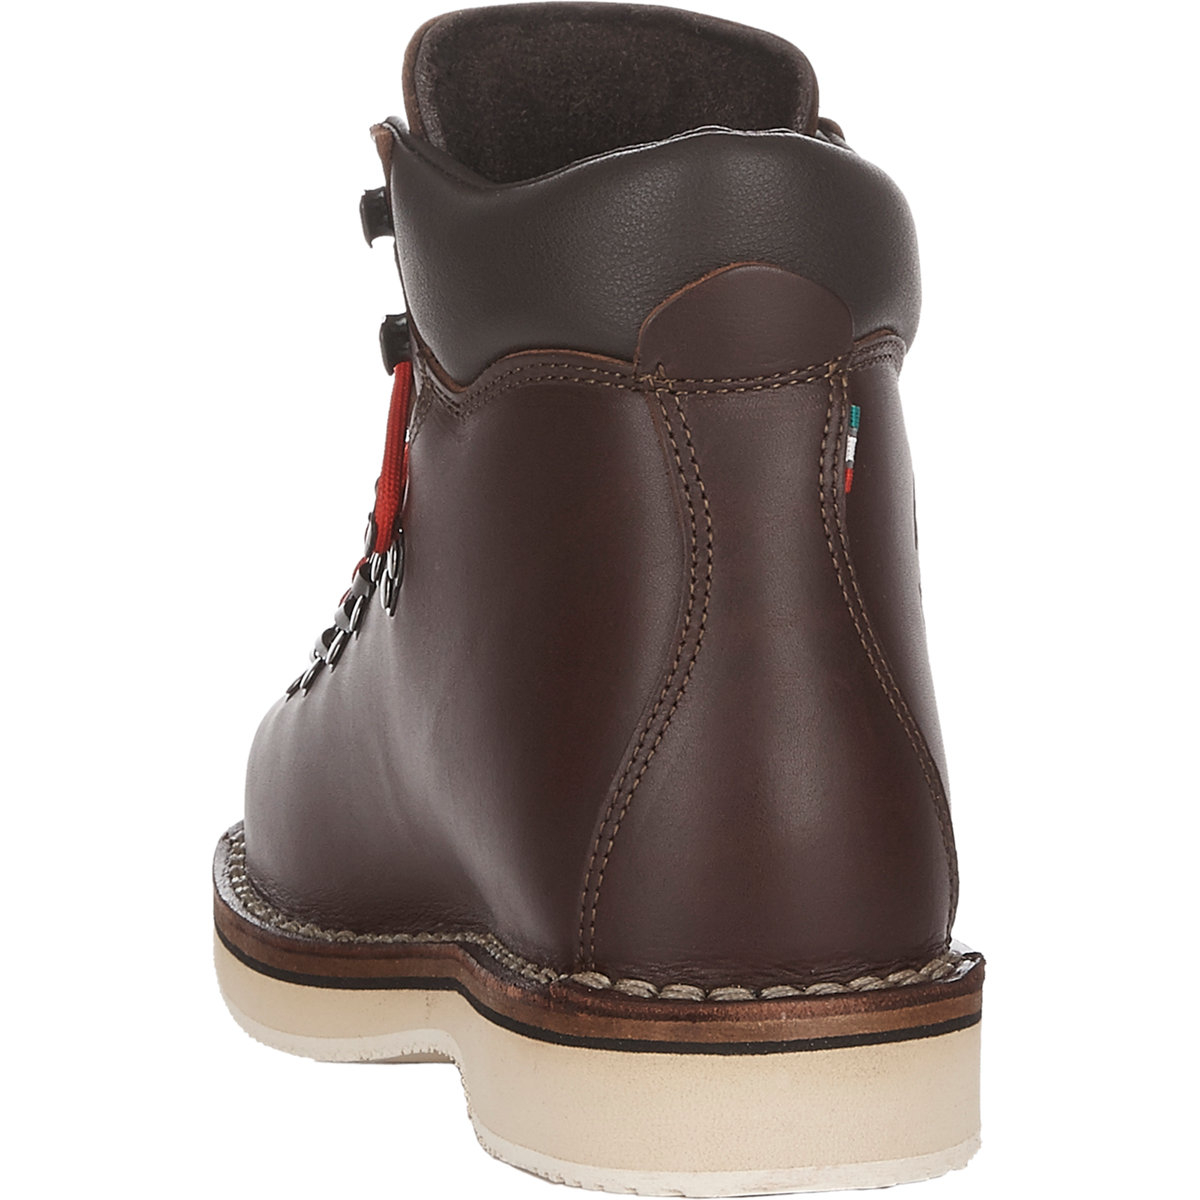 Lyst Diemme Roccia Vet Boots In Brown For Men